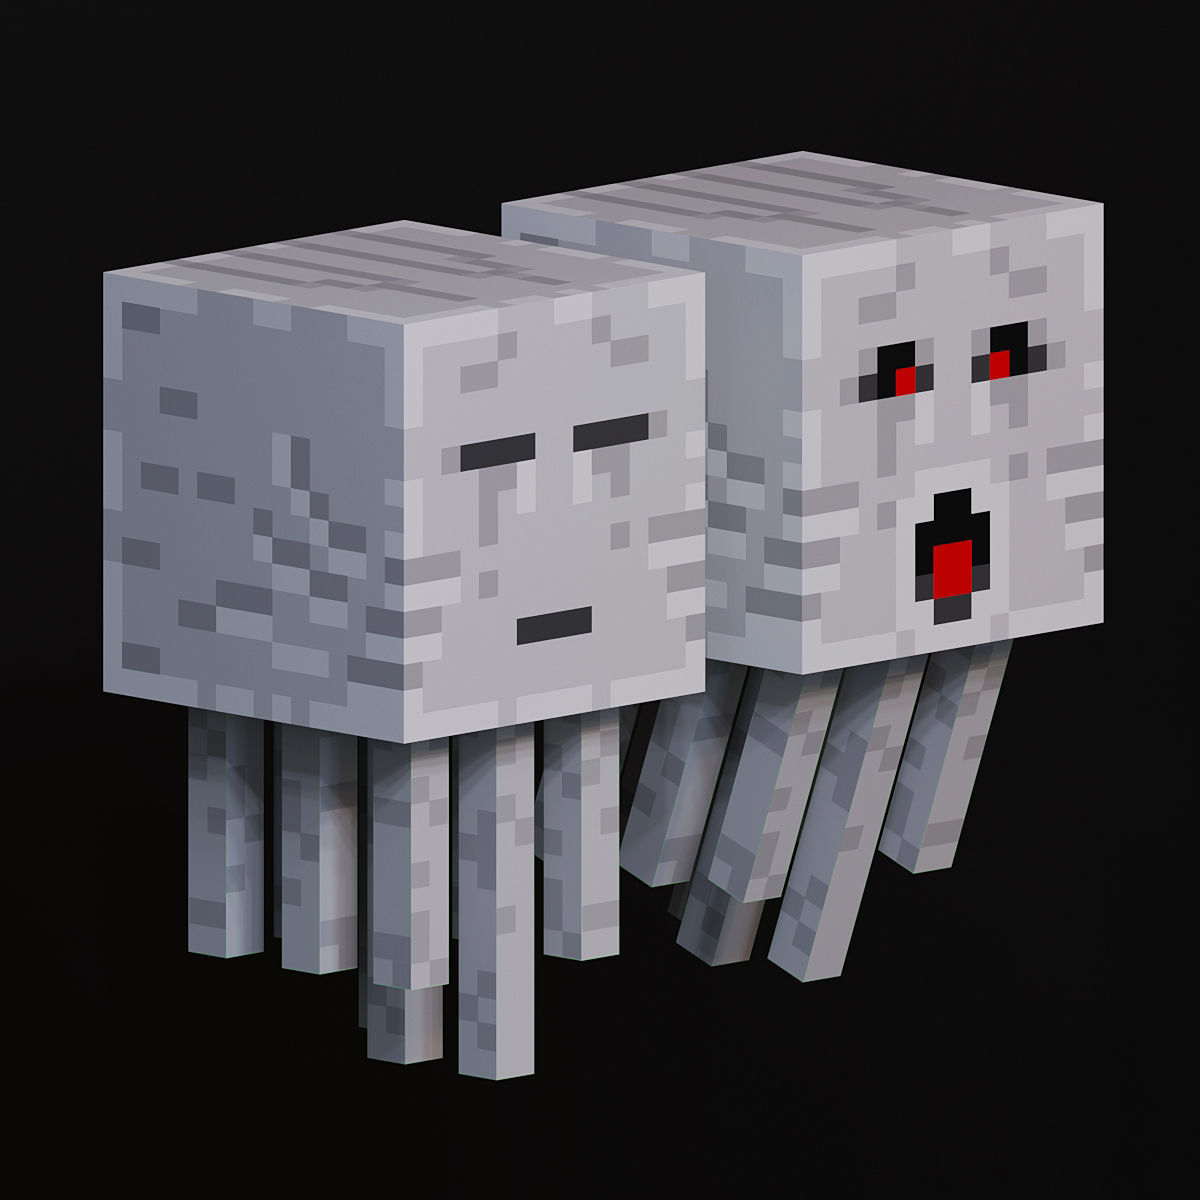 Ghast mob from minecraft 3D model   CGTrader